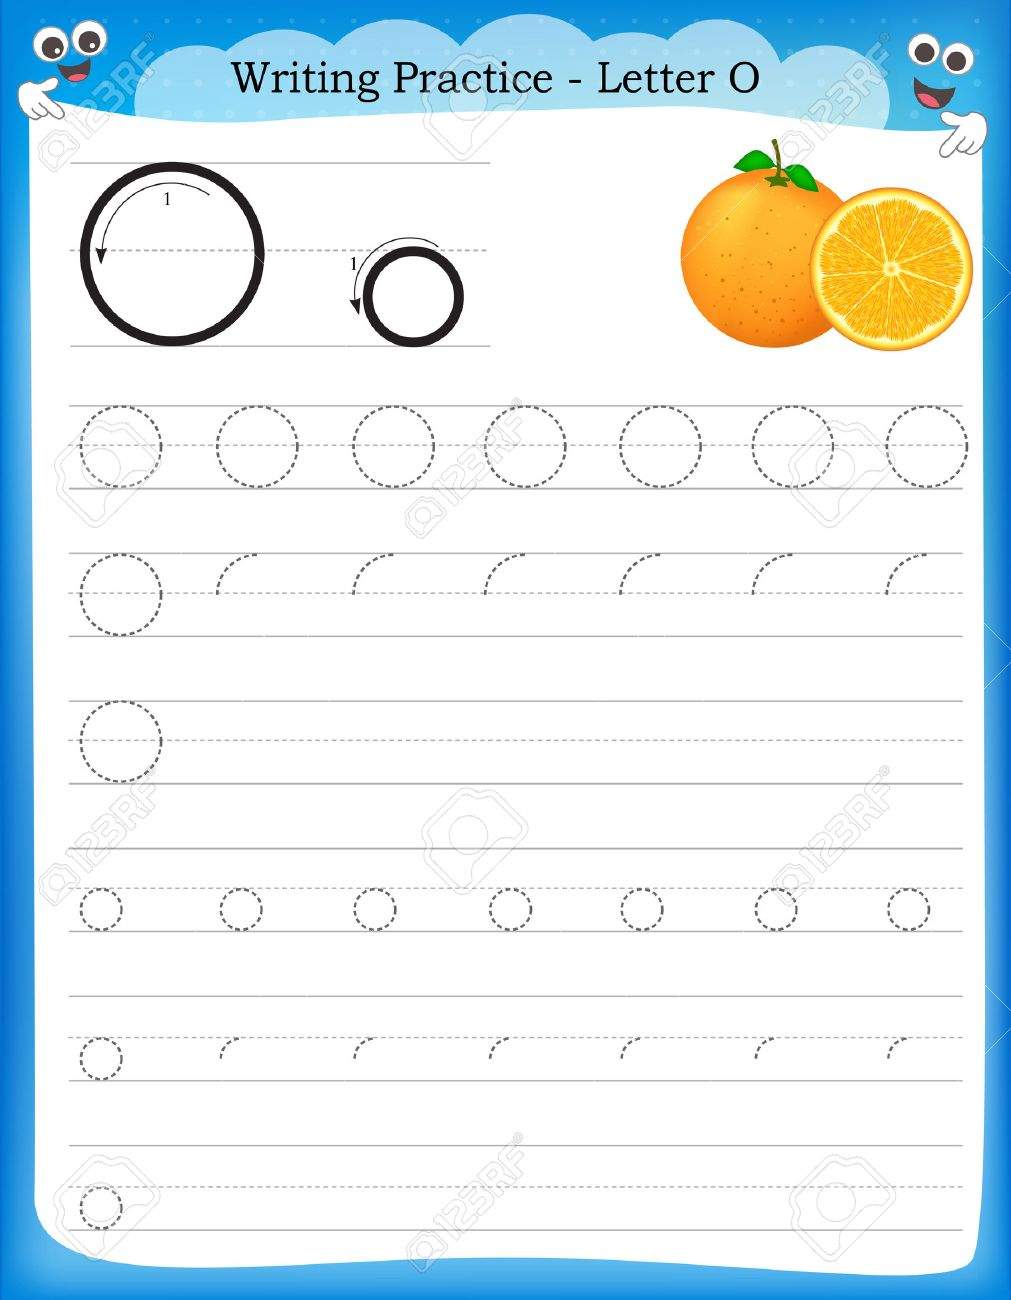 Writing Practice Letter O Printable Worksheet With Clip Art – Letter O Worksheets Preschool